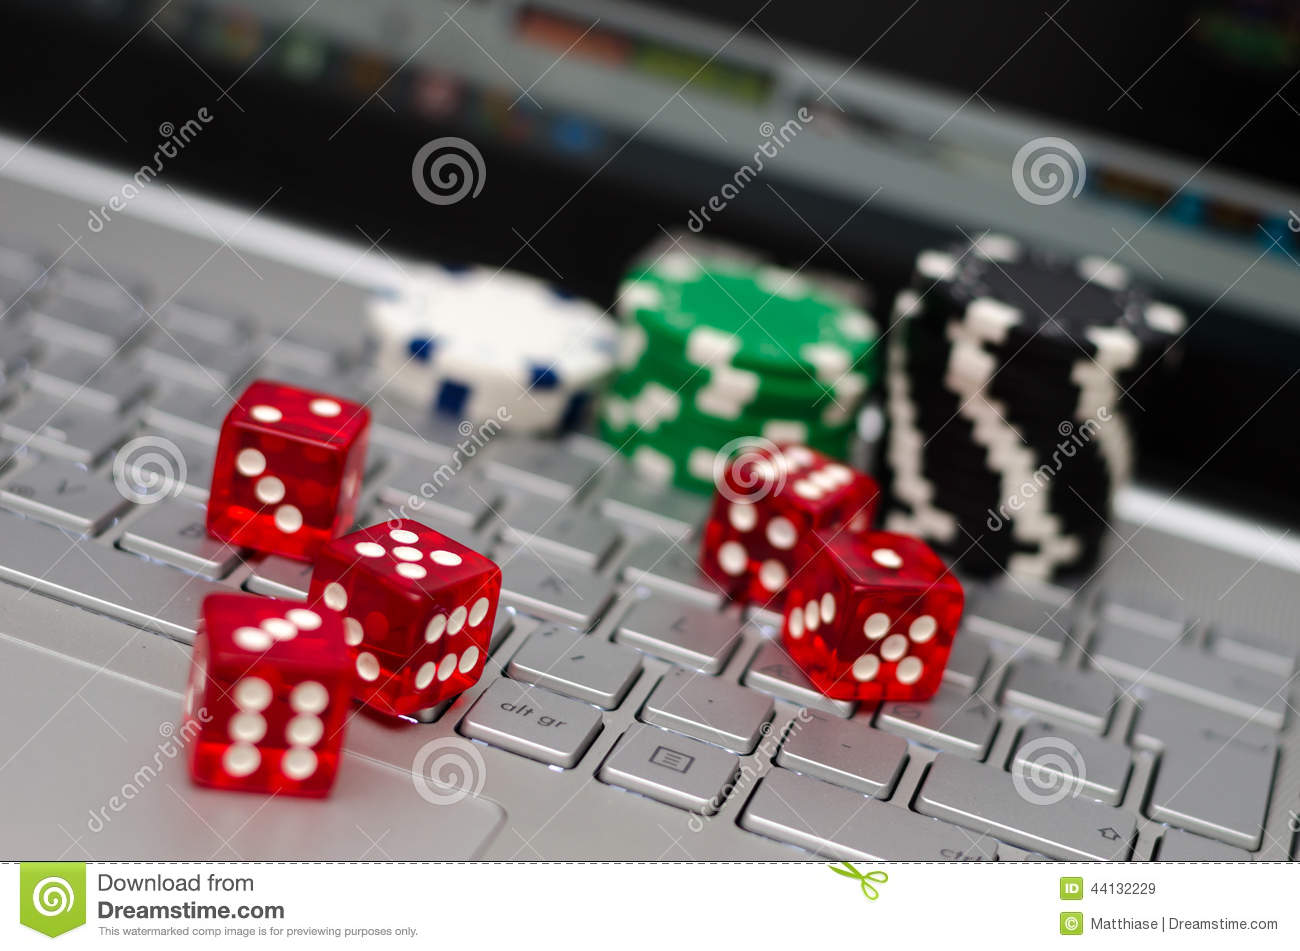 online-gambling-addiction-concept-image-44132229.jpg